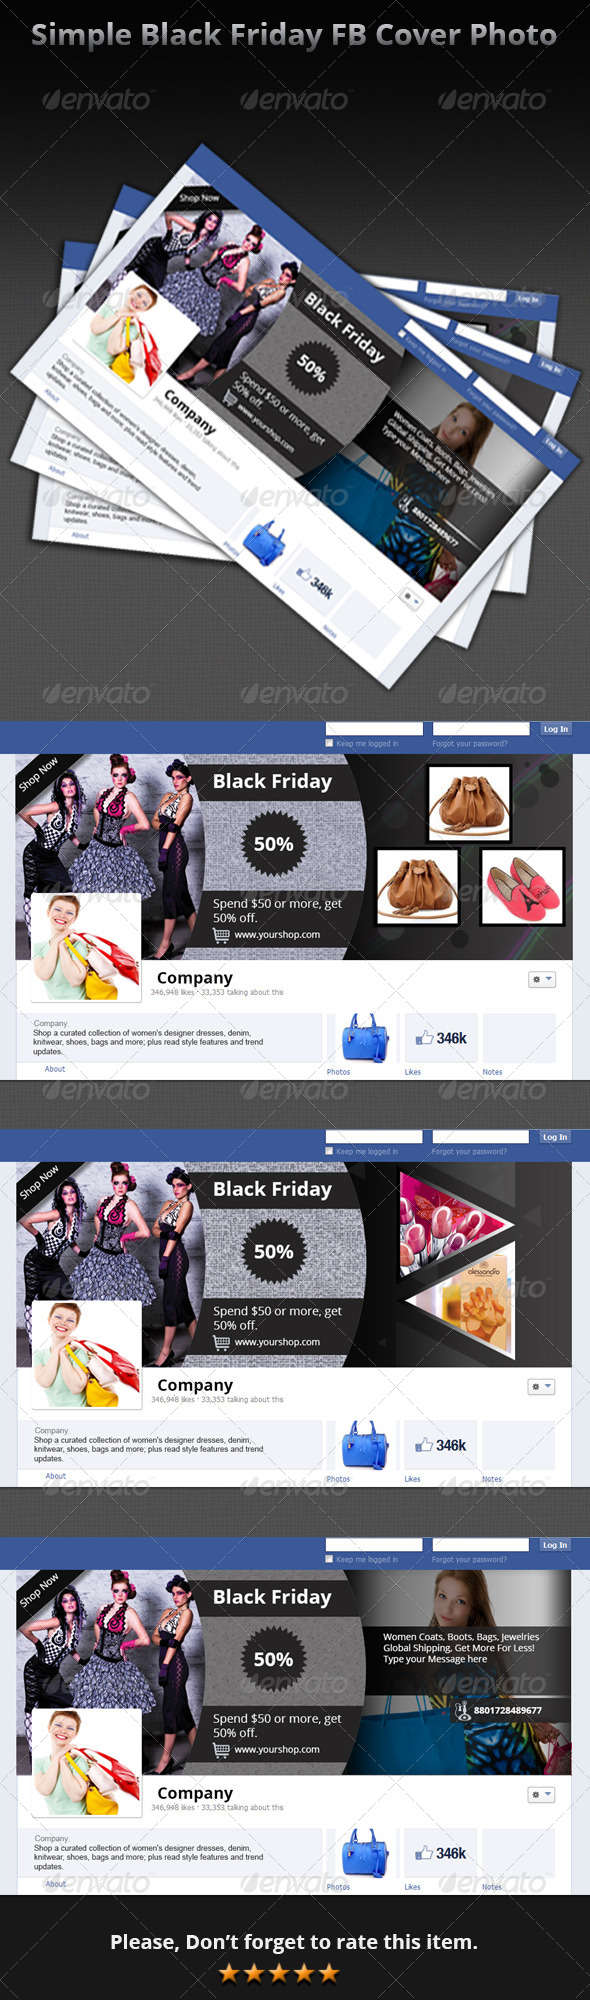 Simple Black Friday FB Cover Photo